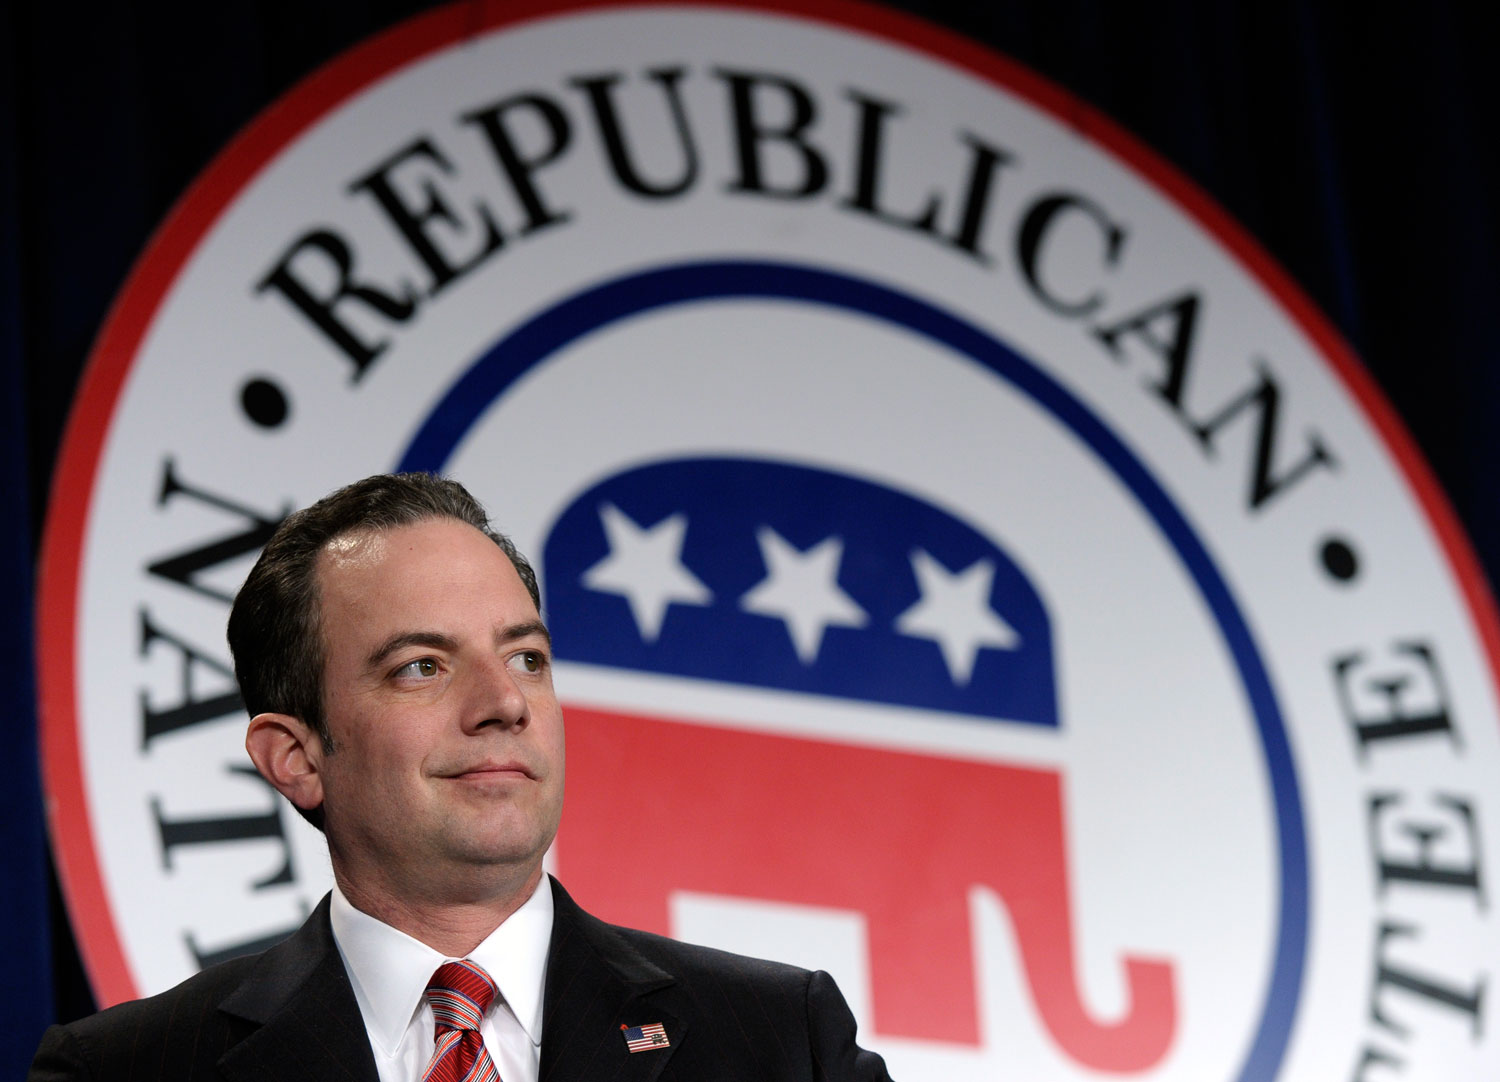 pemRNC-Chairman-Reince-Priebus-stands-on-stage-at-an-annual-winter-meeting-in-Washington-Friday-Jan.-24-2014.-AP-PhotoSusan-Walshemp